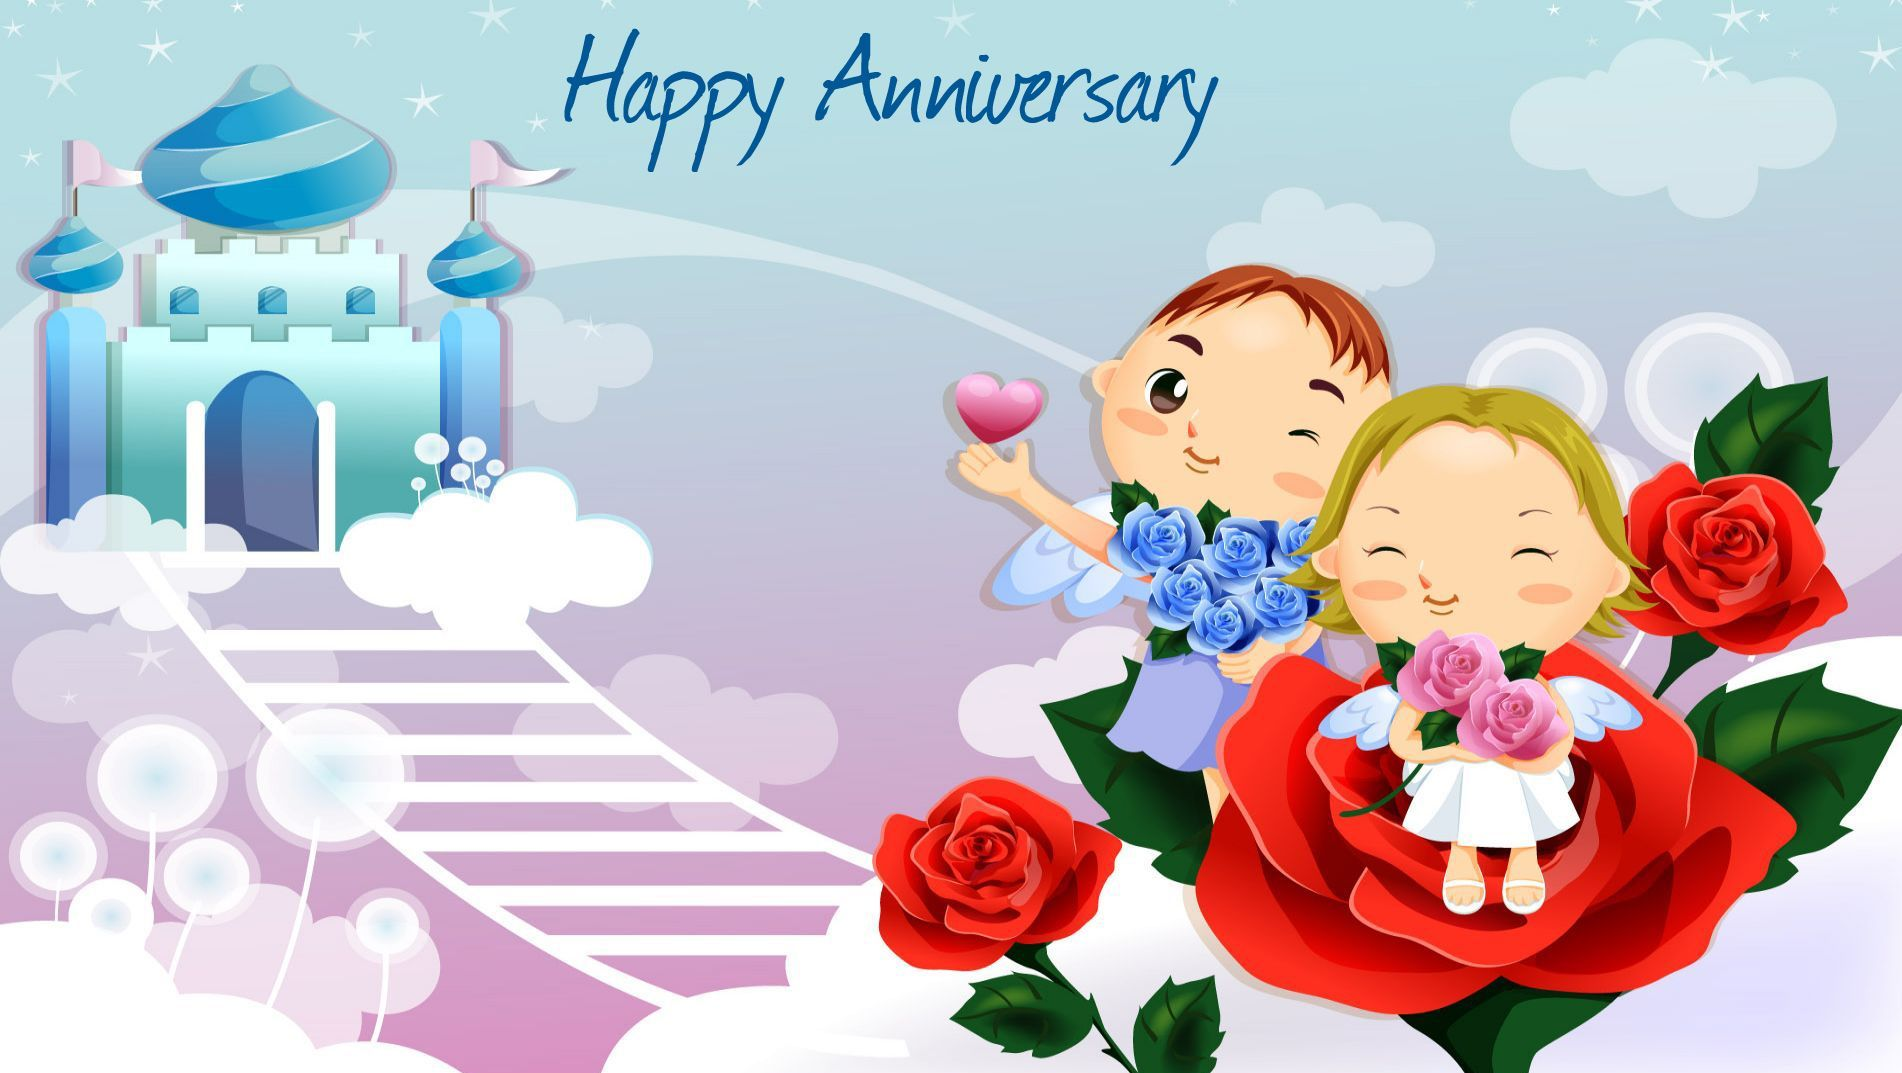 Anniversary Pictures, Images, Graphics - Page 8